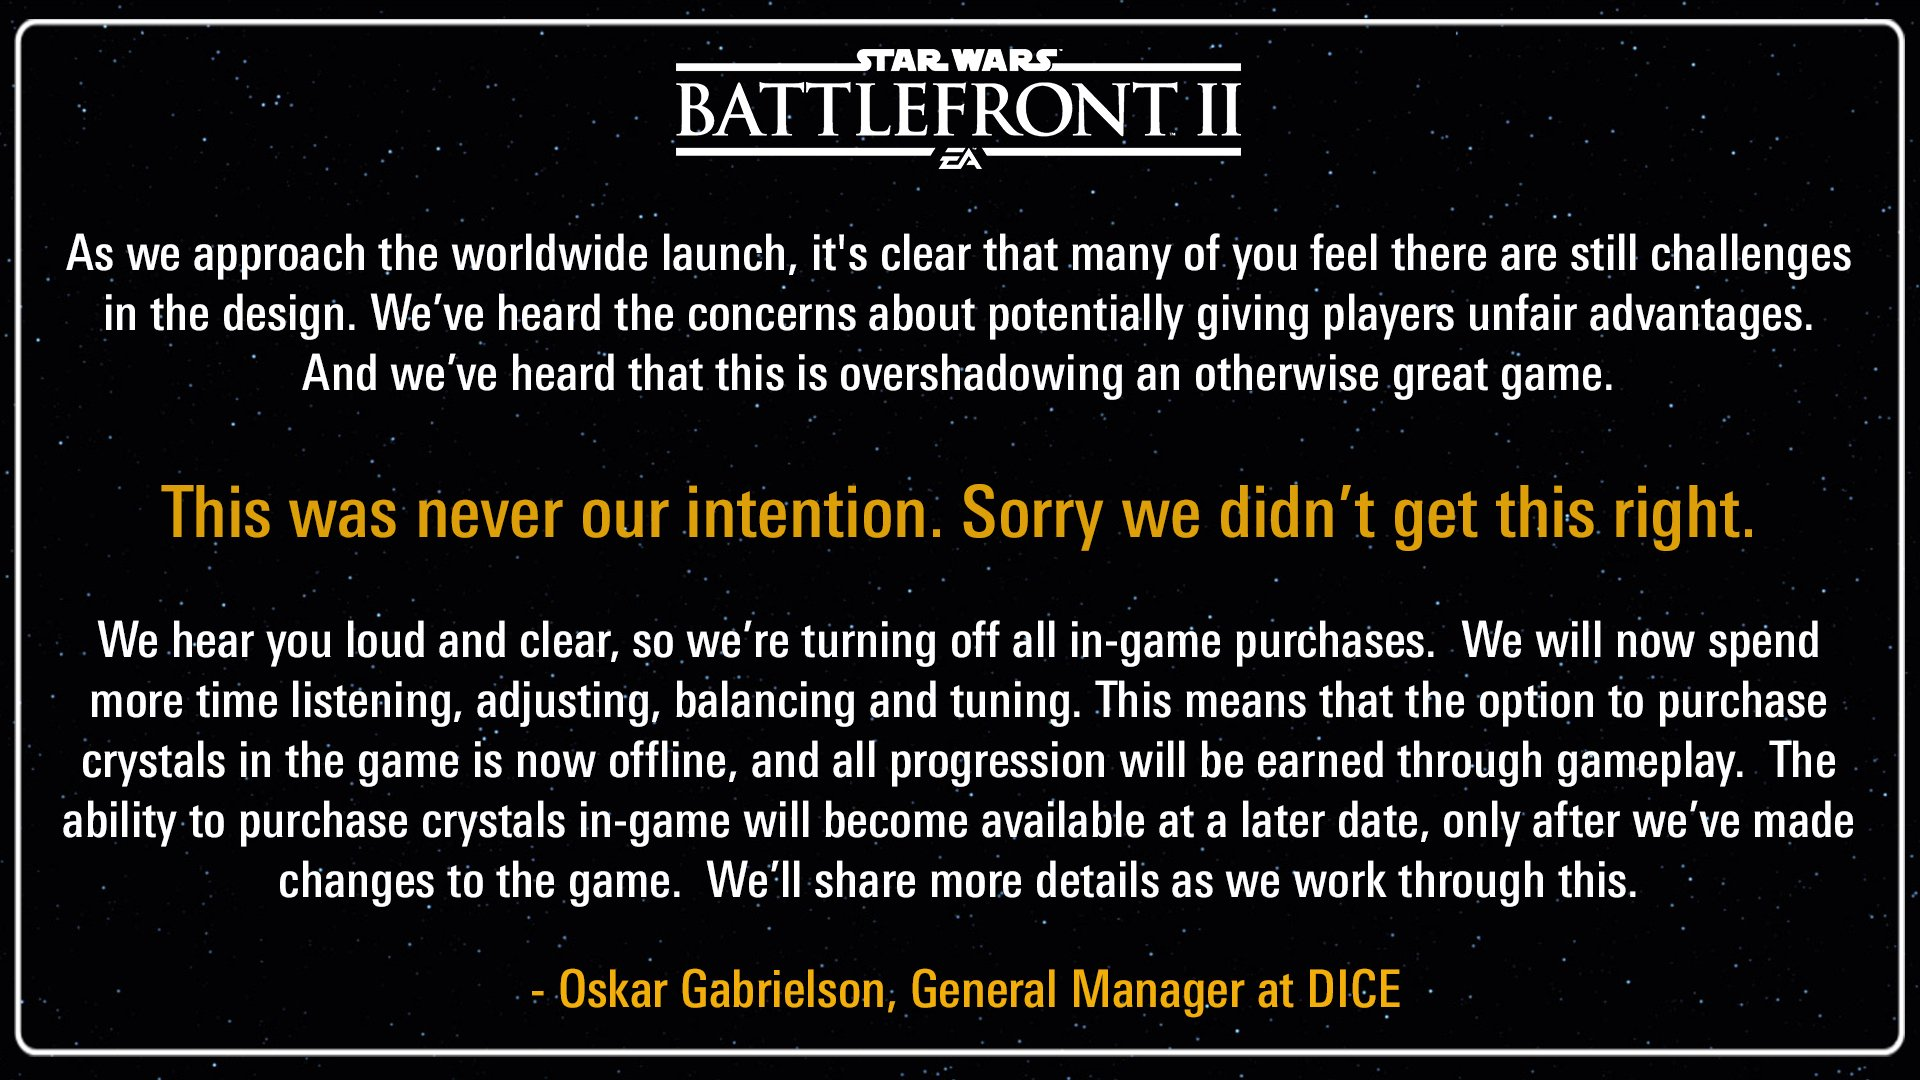 No more microtransactions from EA? Spoiler: ITS A TRAP